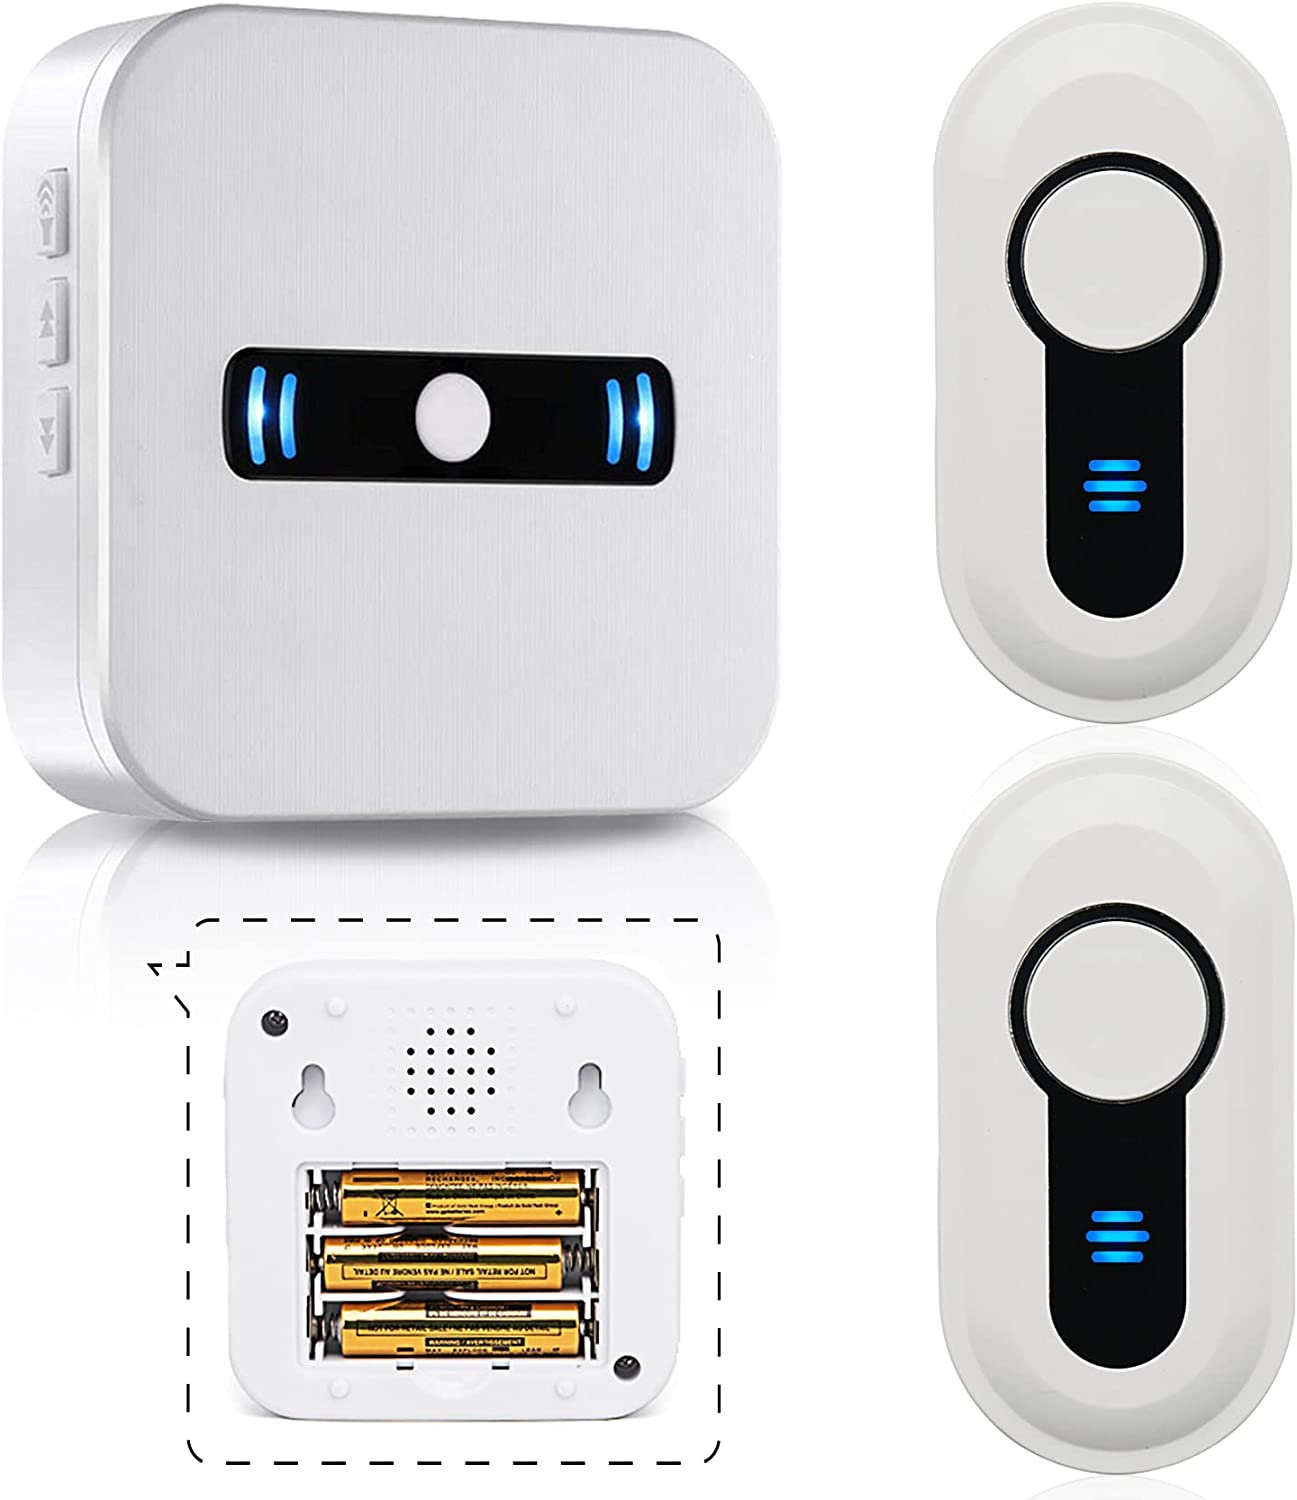 HUWOO Wireless Doorbell for Home Business Store Office,Battery Operated Door Bell Chime with 1 Portable Receiver 2 Waterproof Push Buttons,Over 1000 feet Range,55 Chimes,5 Volume Levels and LED Flash